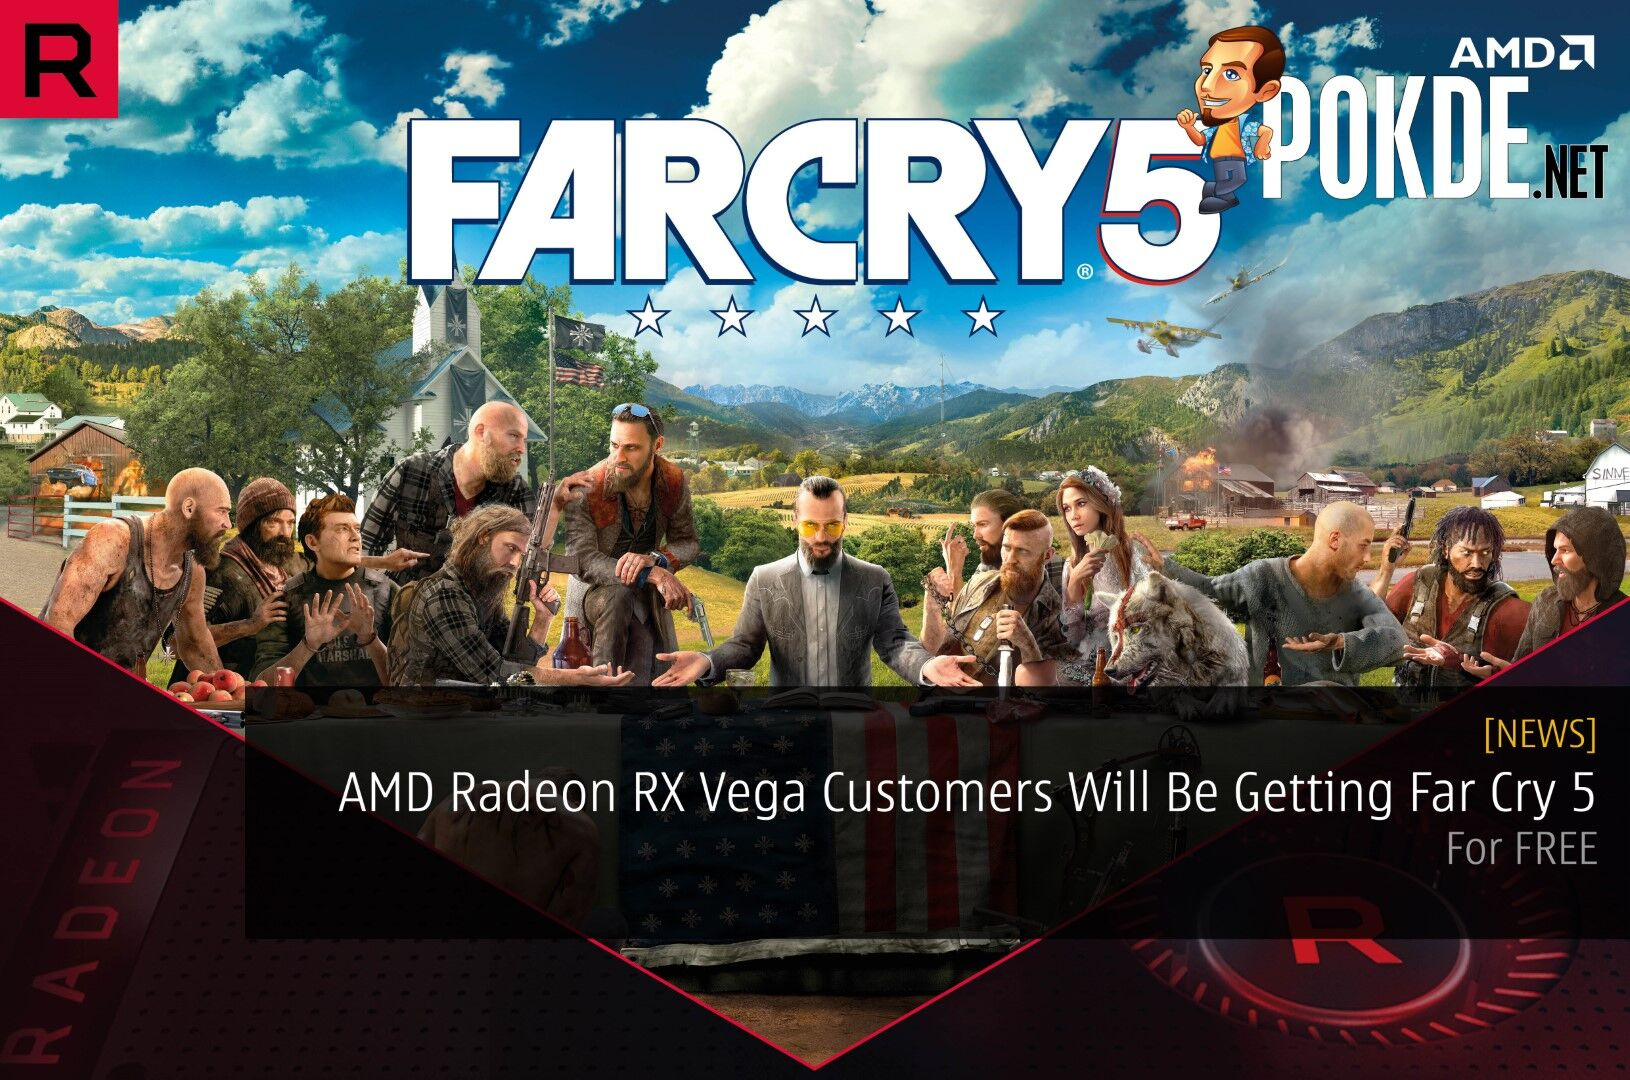 AMD Radeon RX Vega Customers Will Be Getting Far Cry 5 For FREE 26